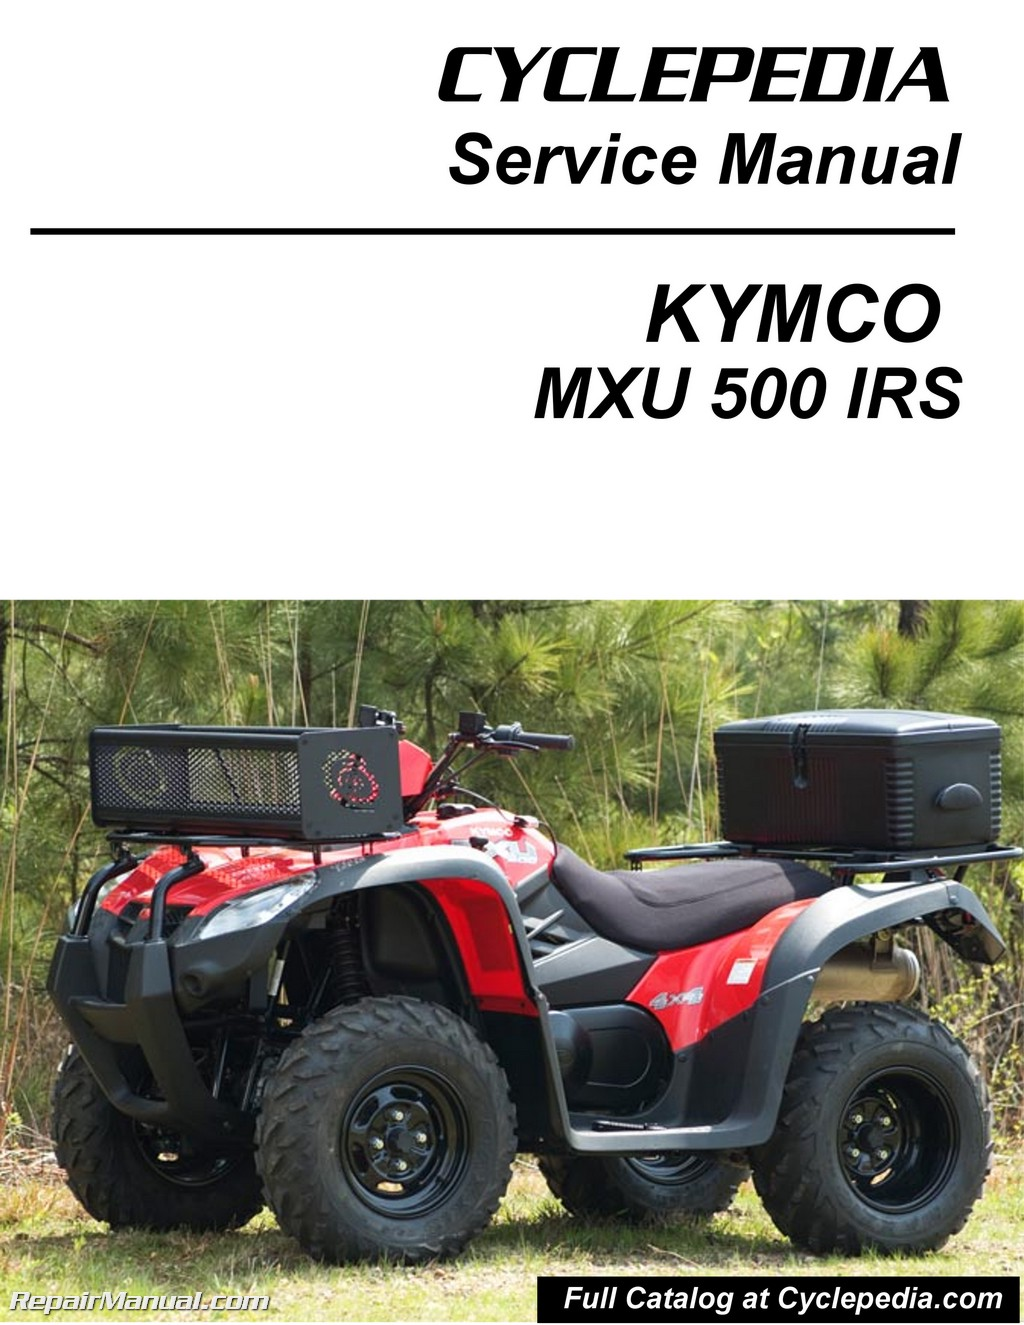 kymco mxu 500 2010 2012 atv service manual printed by cyclepedia. Black Bedroom Furniture Sets. Home Design Ideas